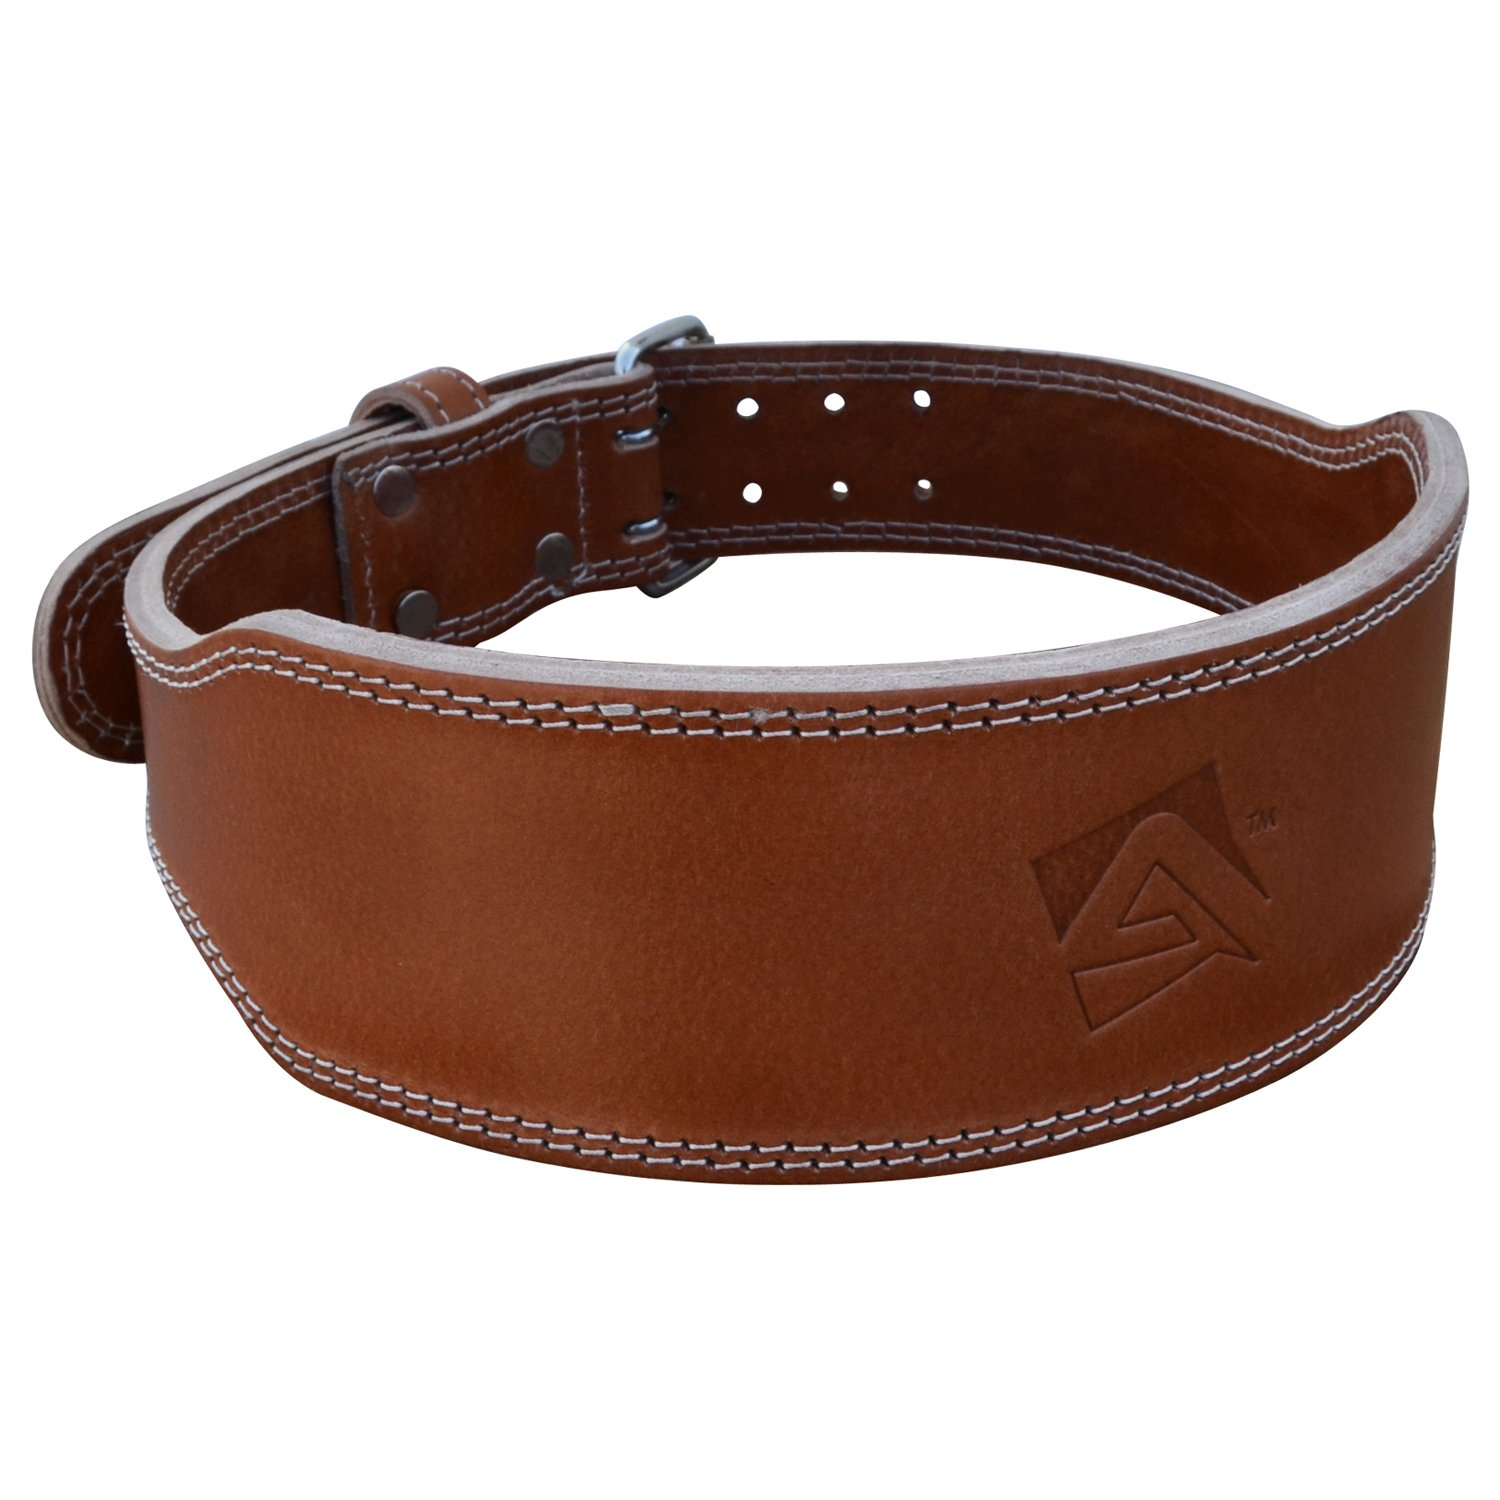 AQF Weight Lifting Belt Vegetable Tanned Cowhide Leather Belt Fitness Exercise Bodybuilding